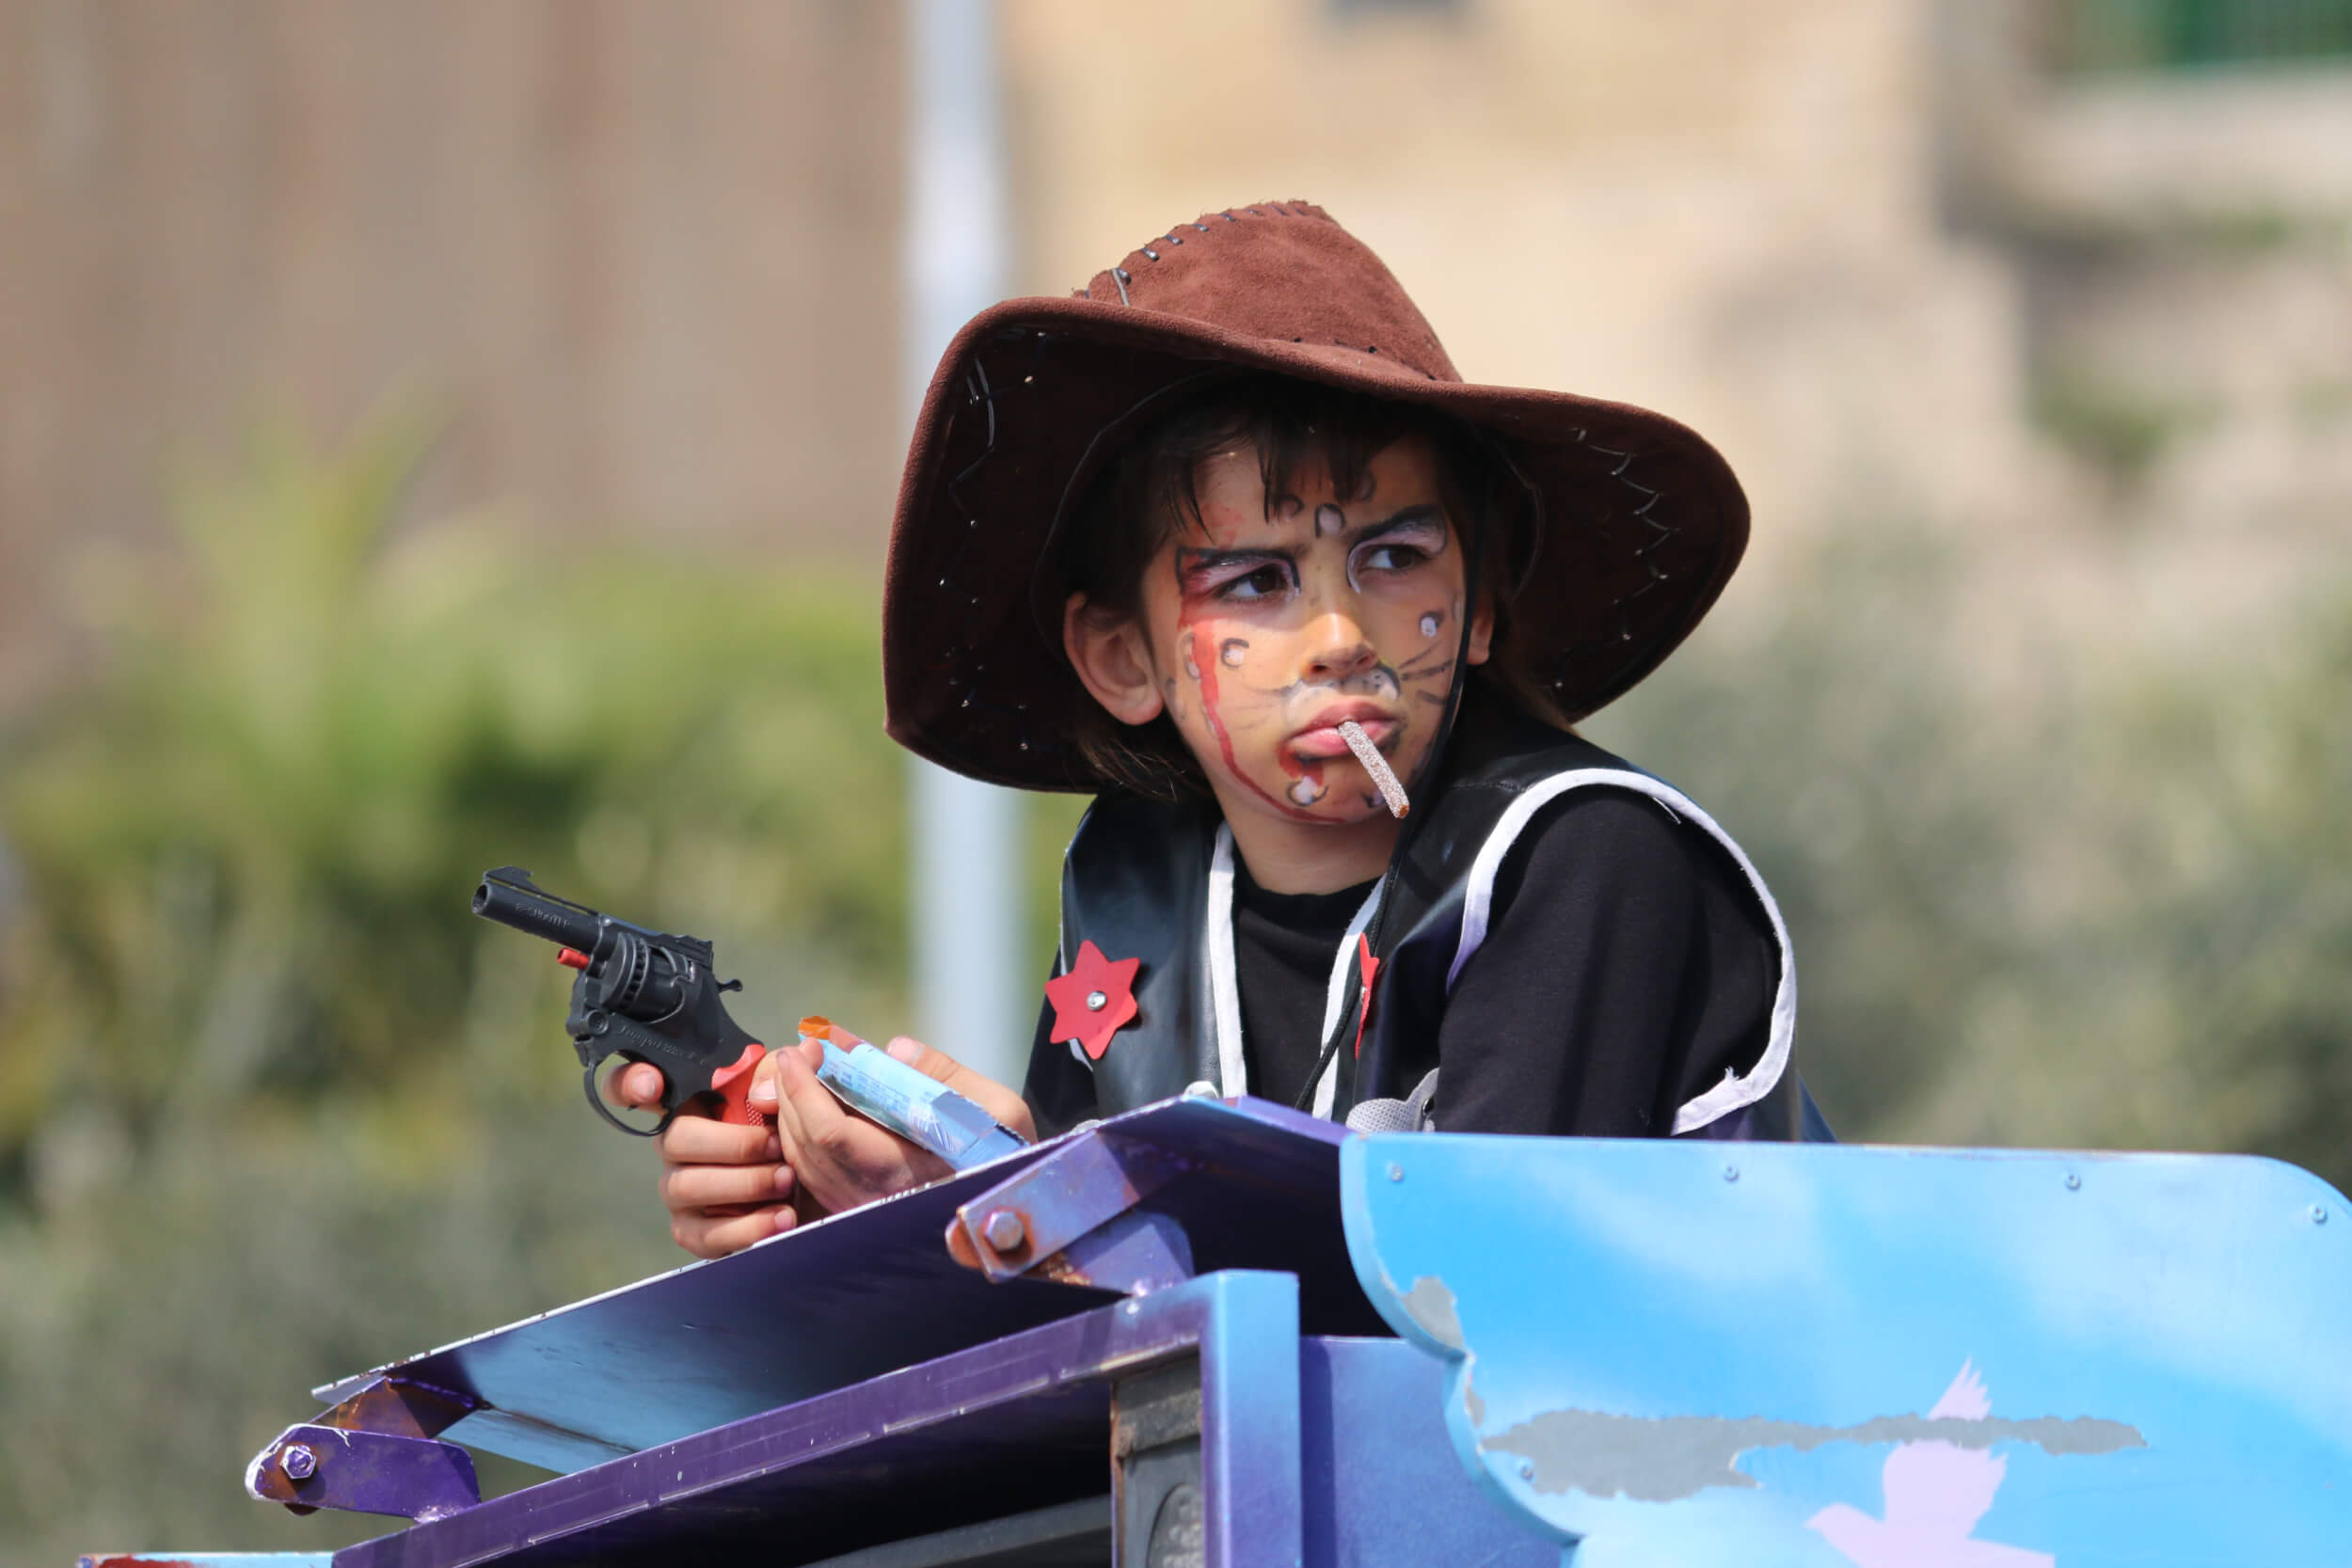 An Israeli child is dressed up as a cowboy. (Photo: Activestills.org